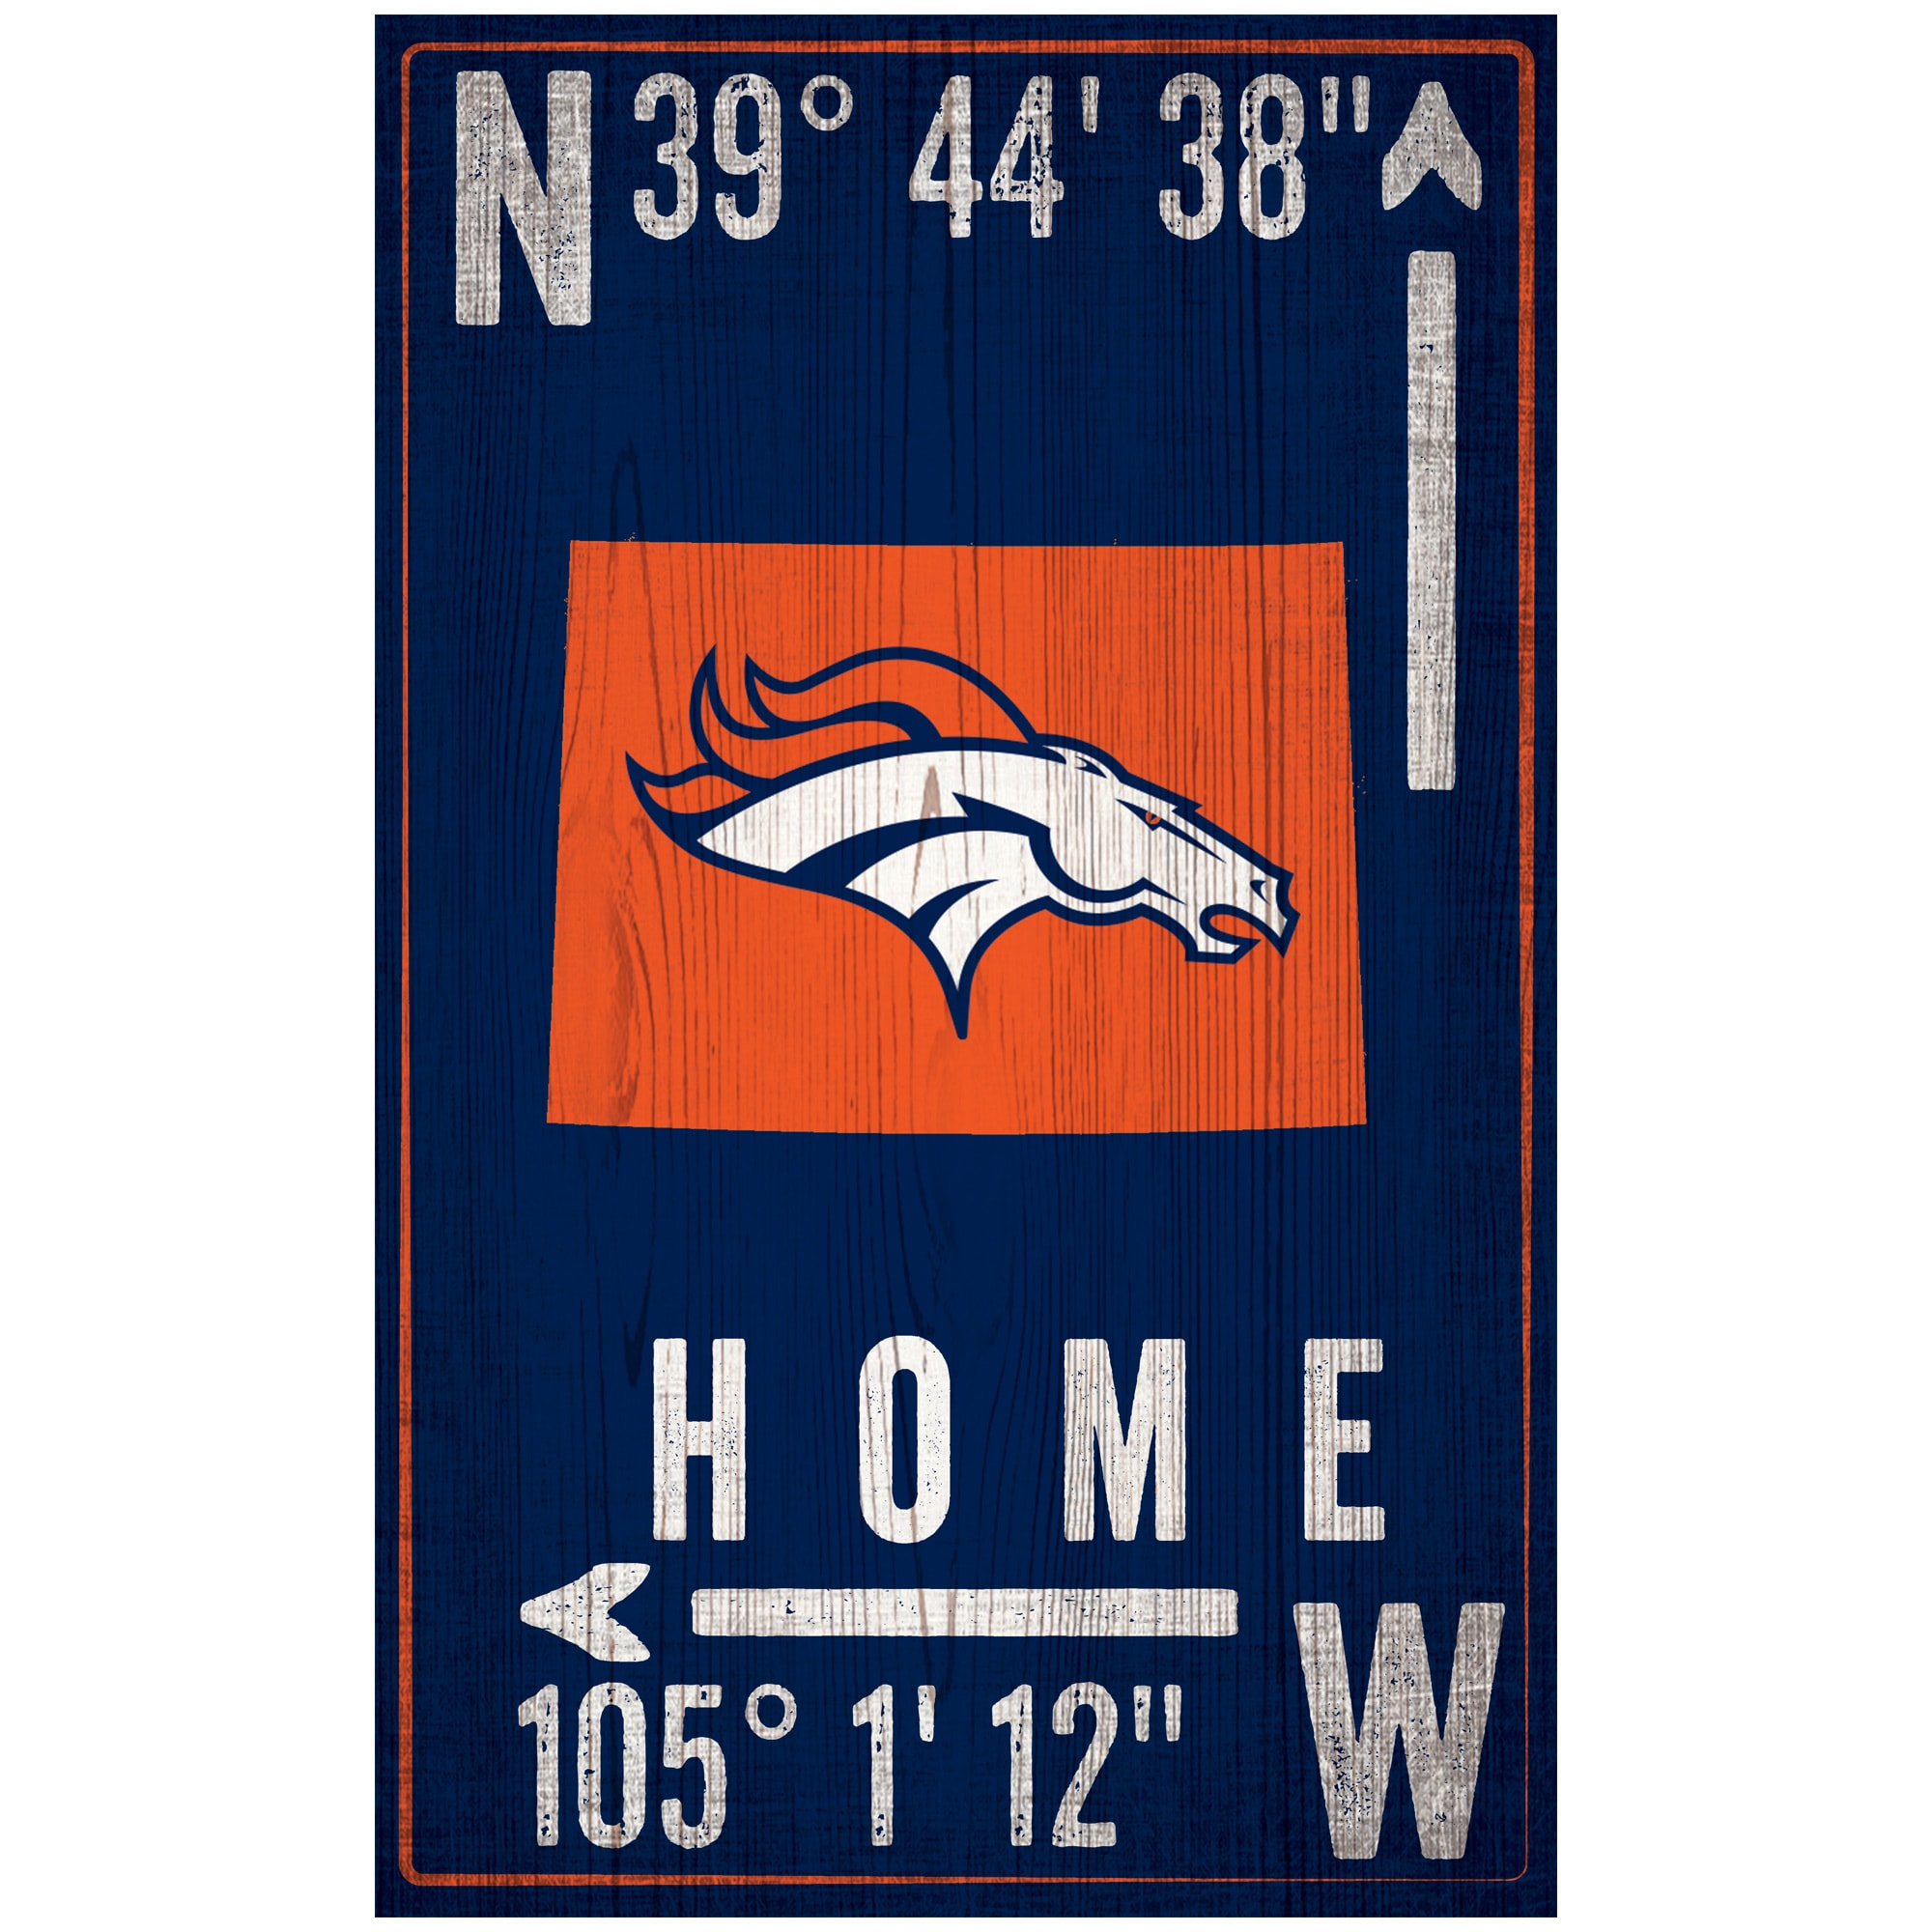 "Denver Broncos 11"" x 19"" Coordinate Sign"